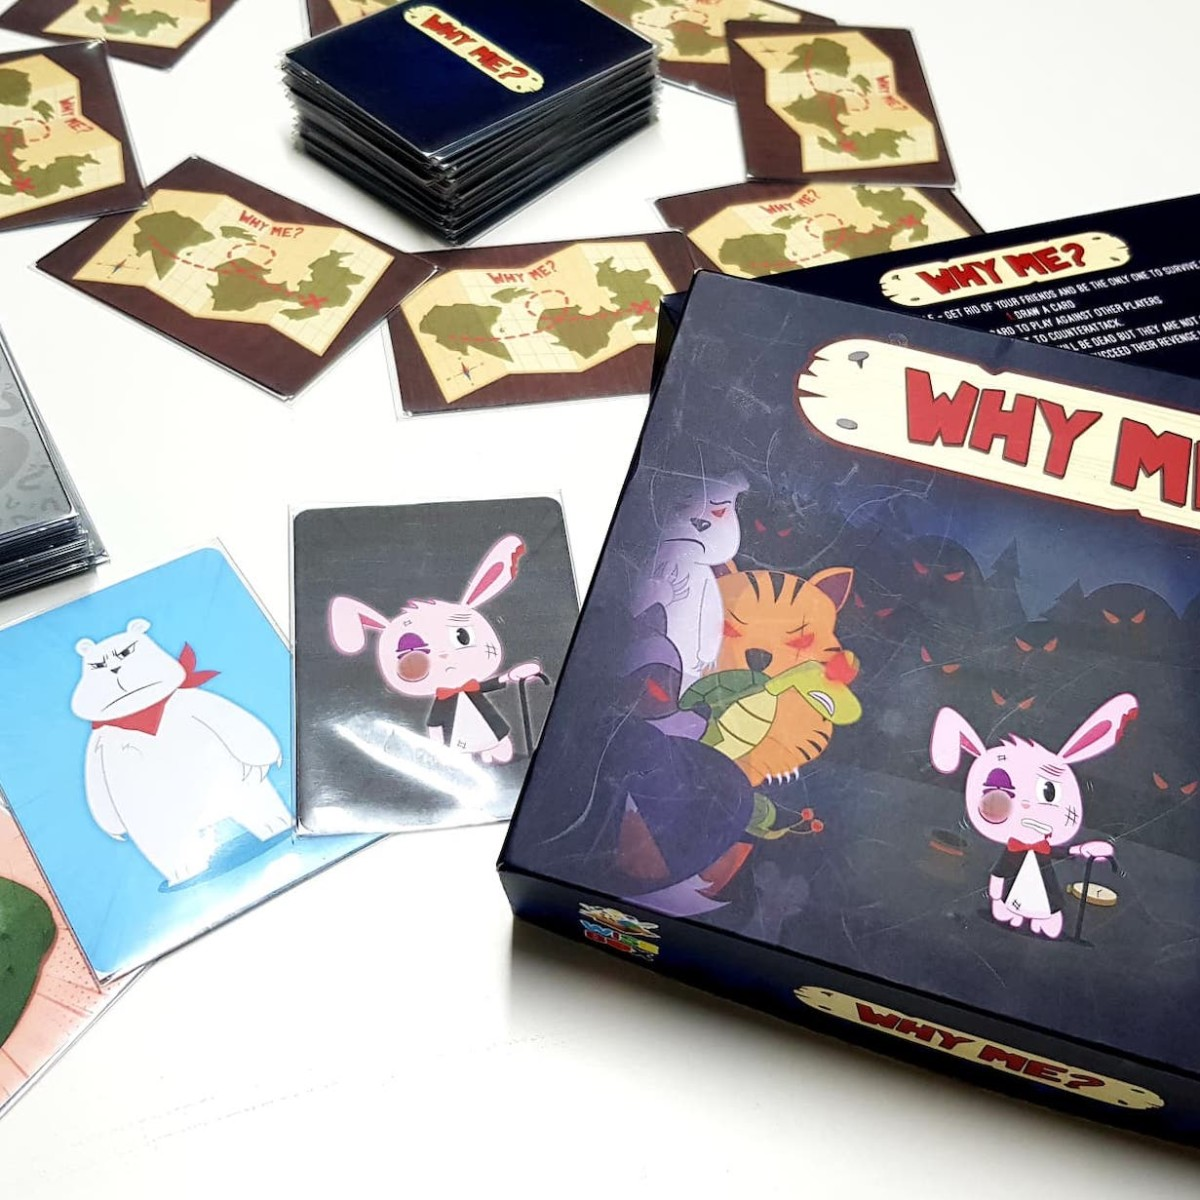 Why Me? Secret Identity Party Game makes you wonder who you can trust